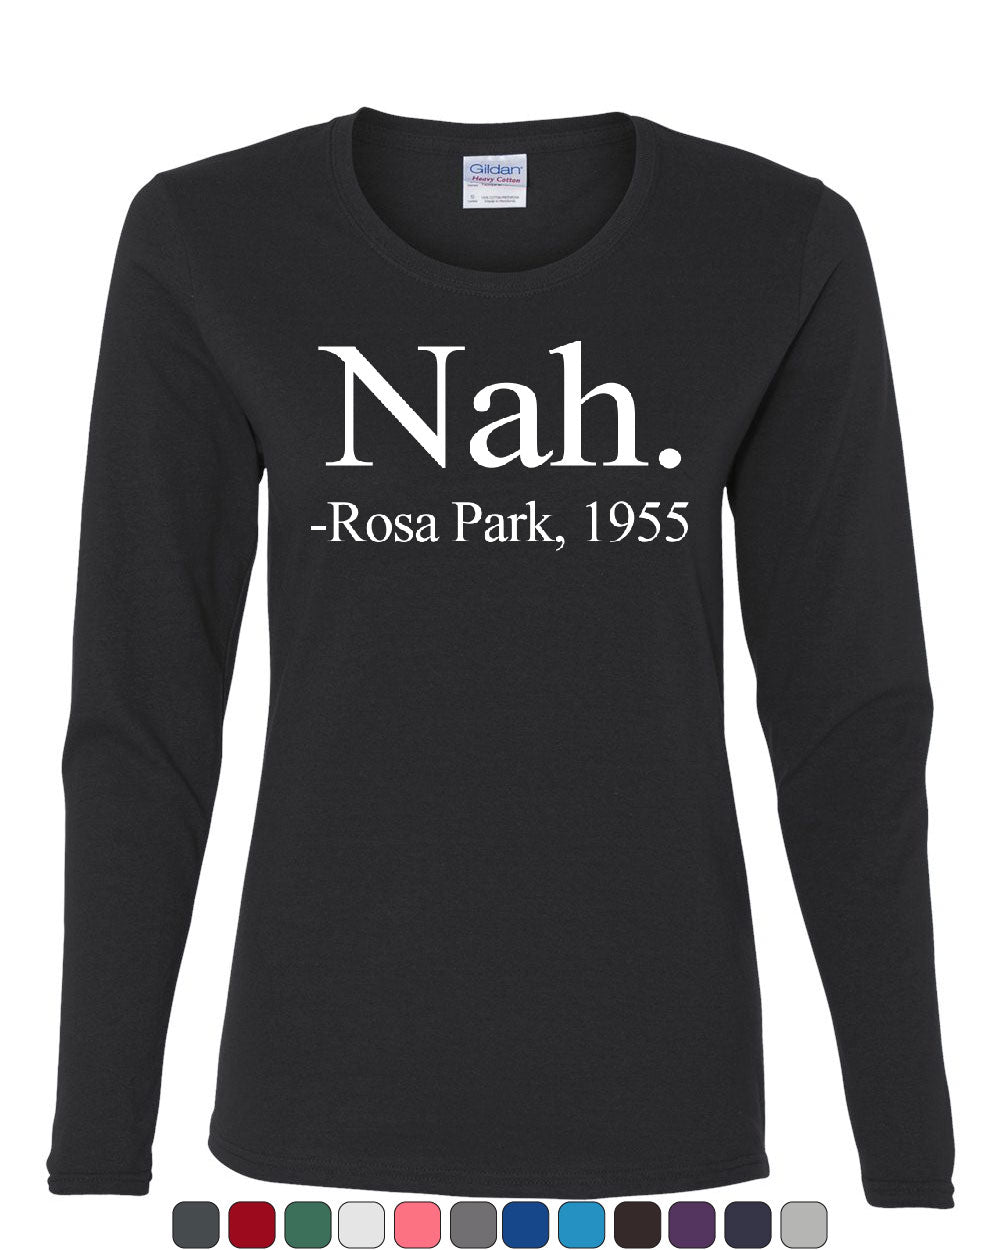 Nah Rosa Parks 1955 Civil Rights Women/'s T-Shirt Freedom Justice